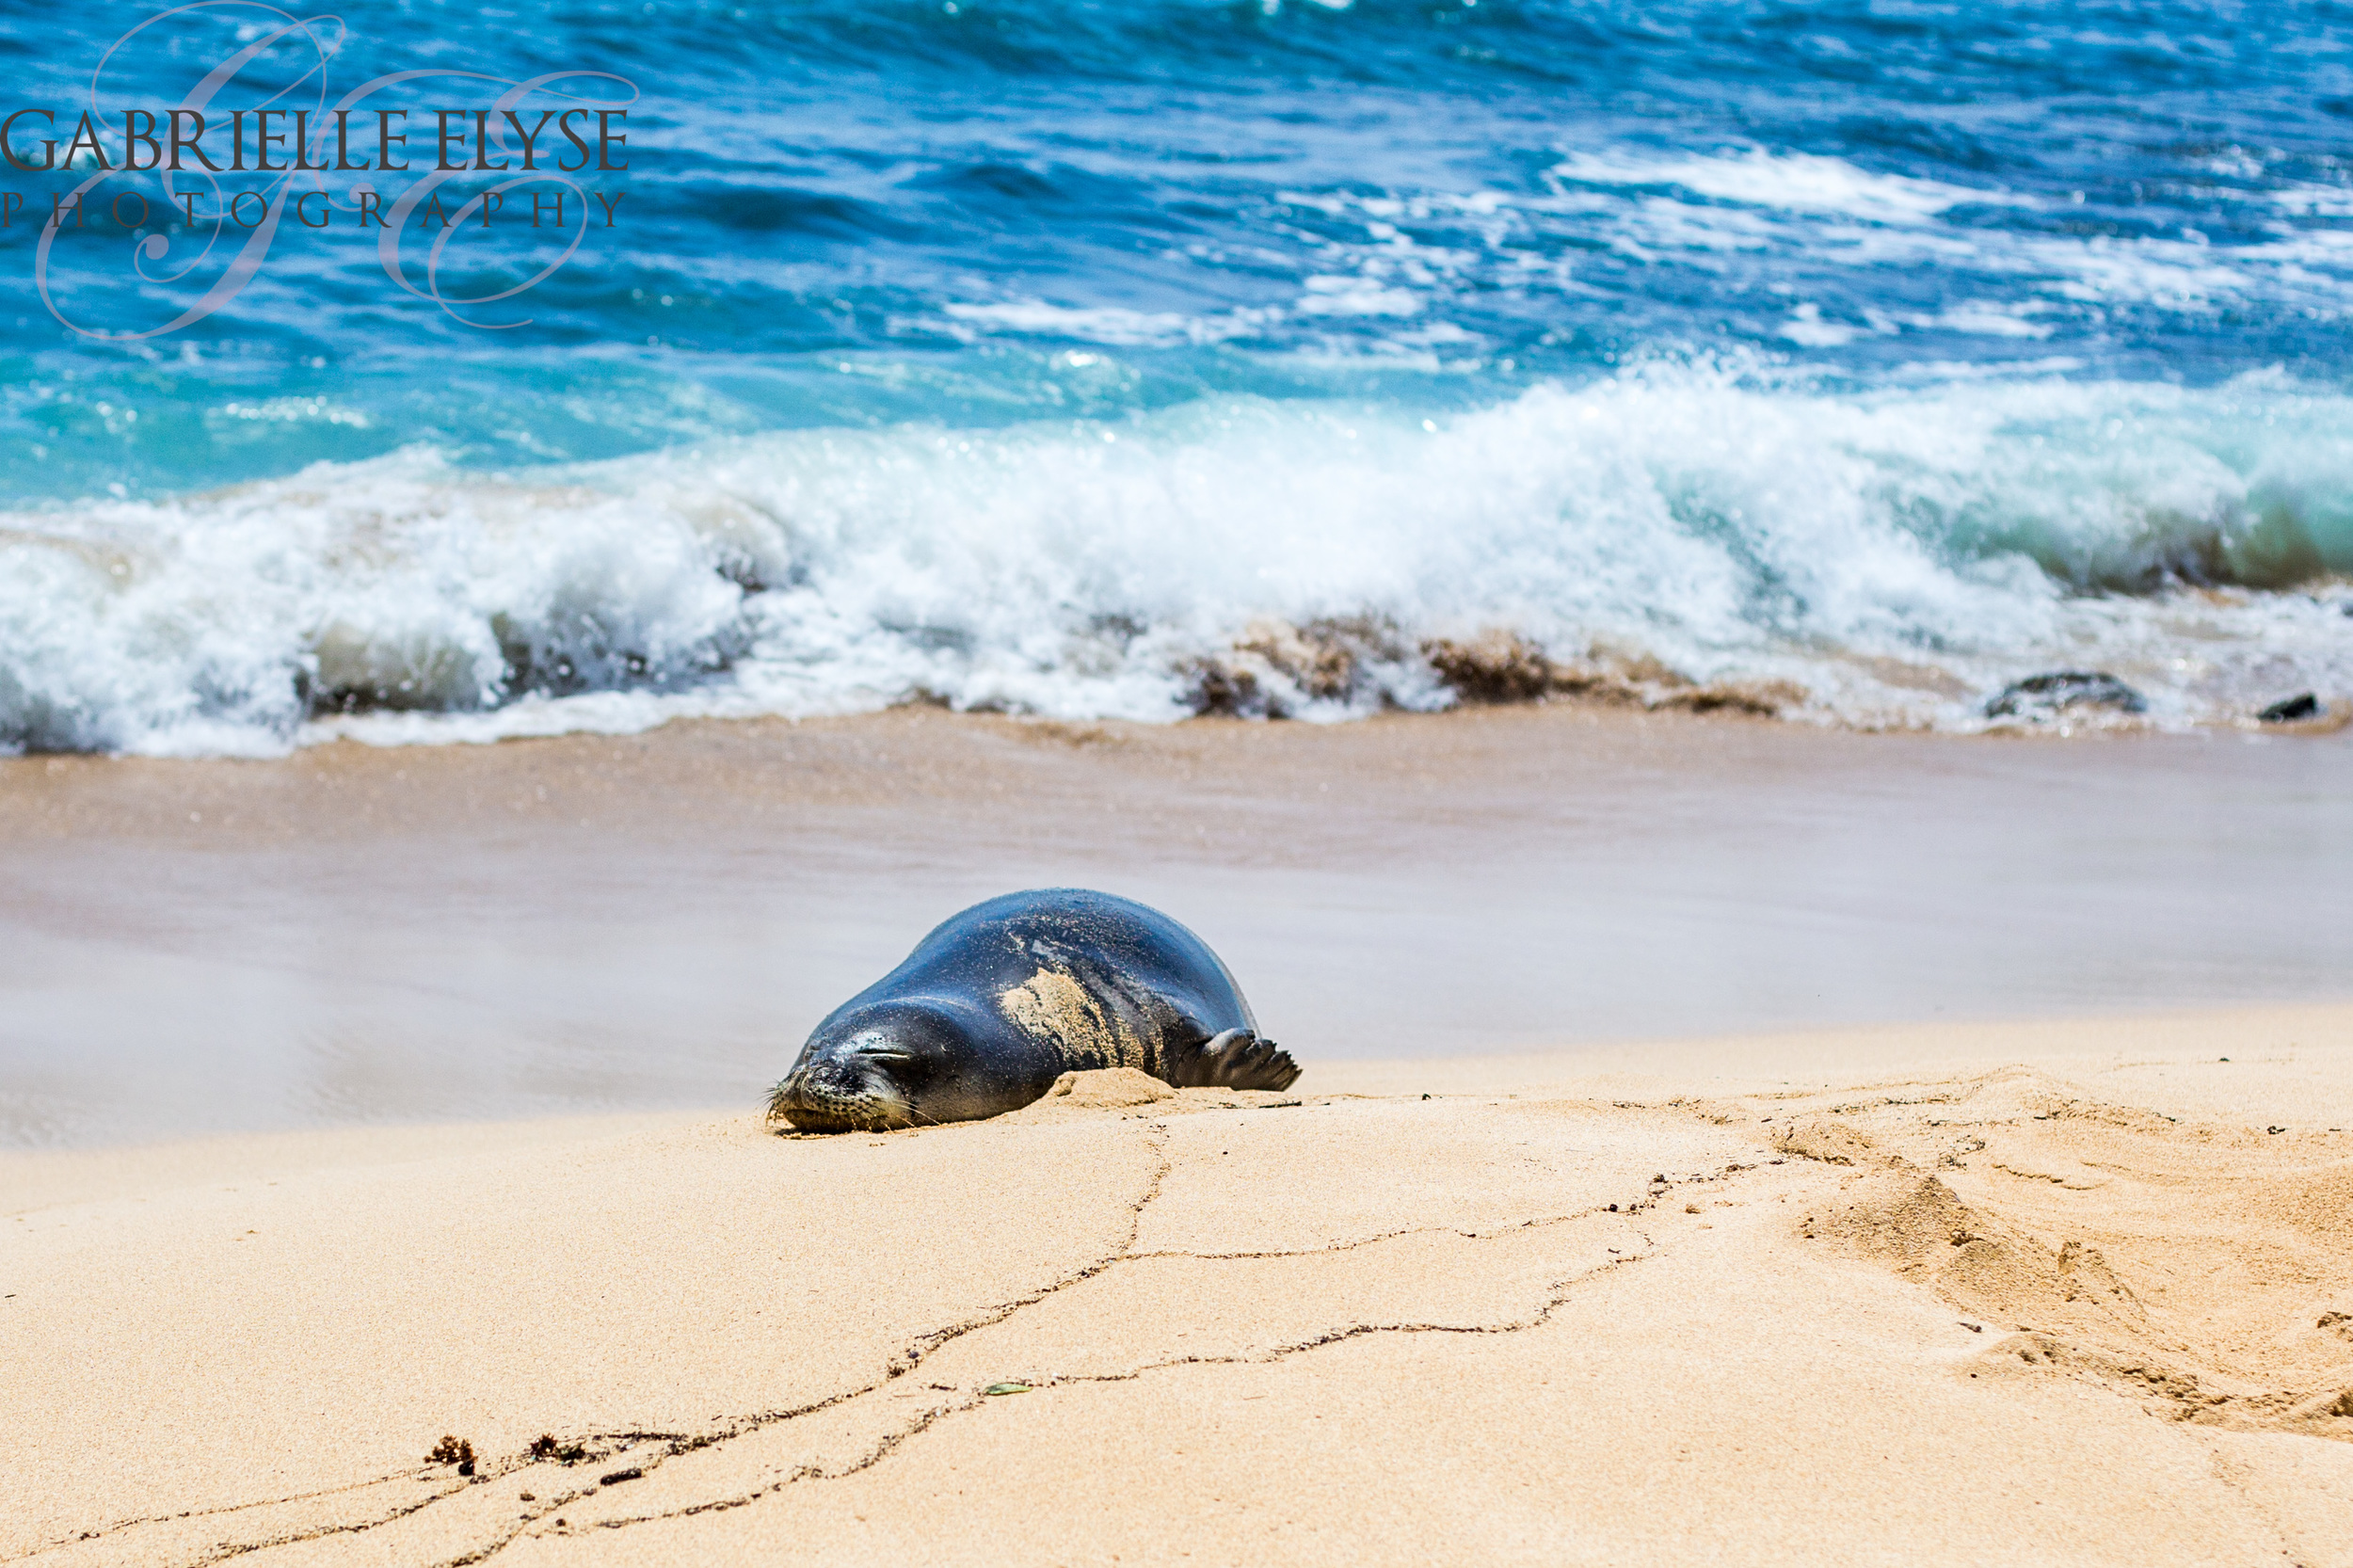 We spotted monk seals several times on the beaches. They are endangered and Kauai does a good job of roping them off with volunteers to help watch them so they can lay out in the sand and sun.